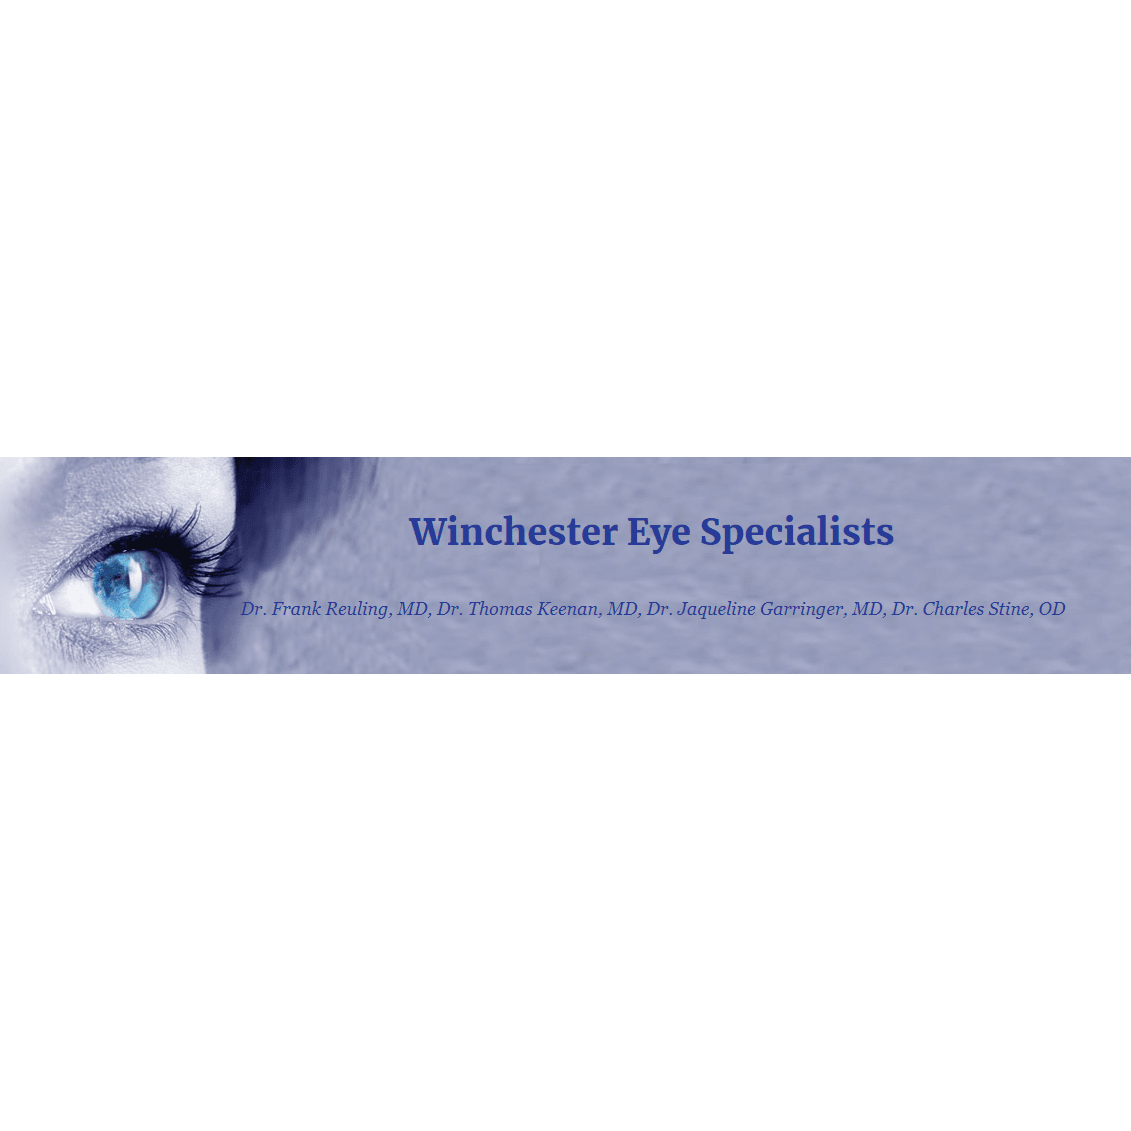 Winchester Eye Specialists